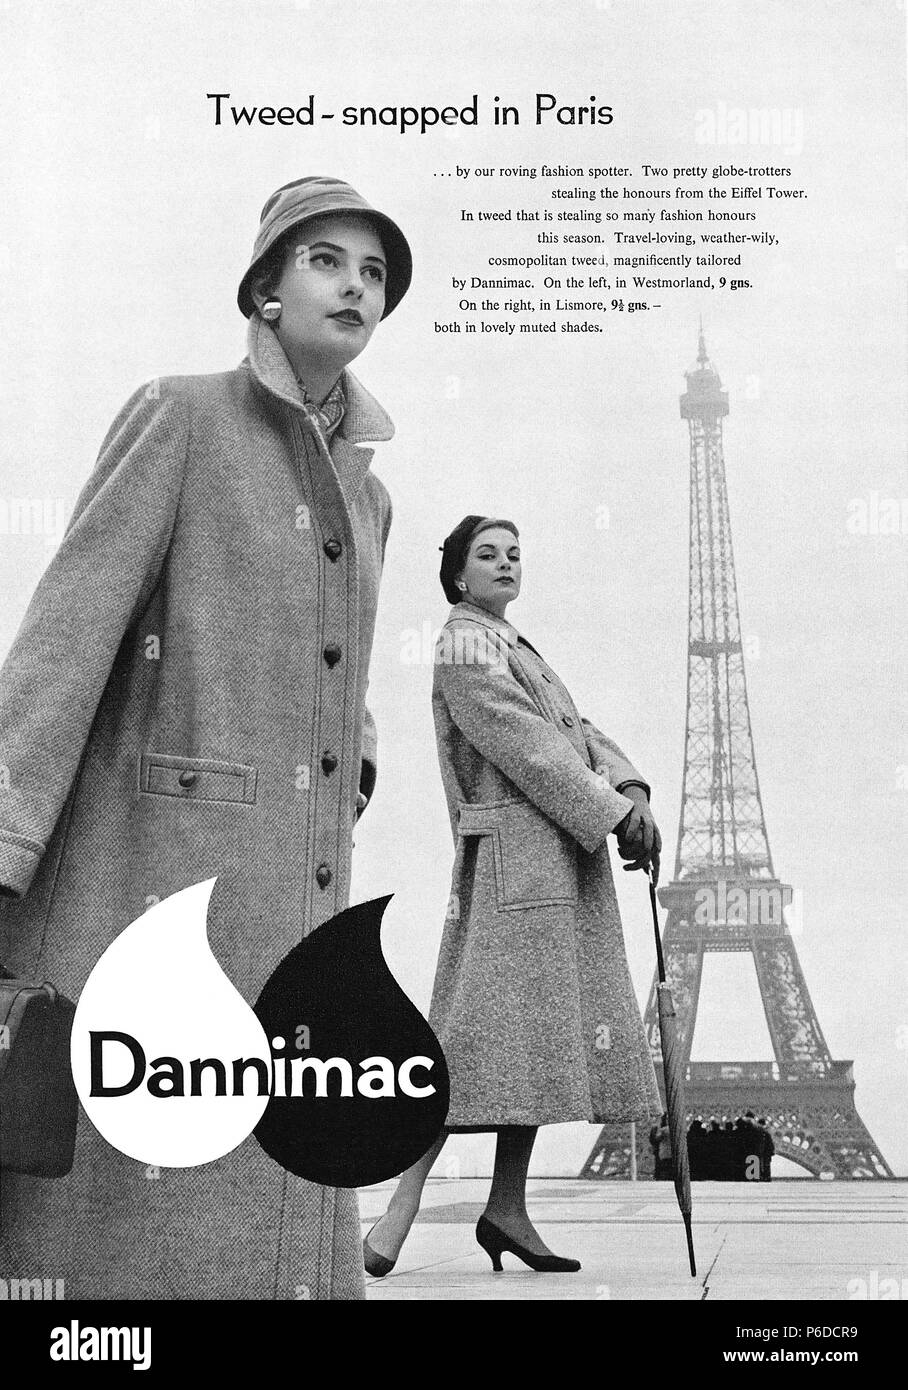 1956 British advertisement for women's tweed overcoats by Dannimac. - Stock Image